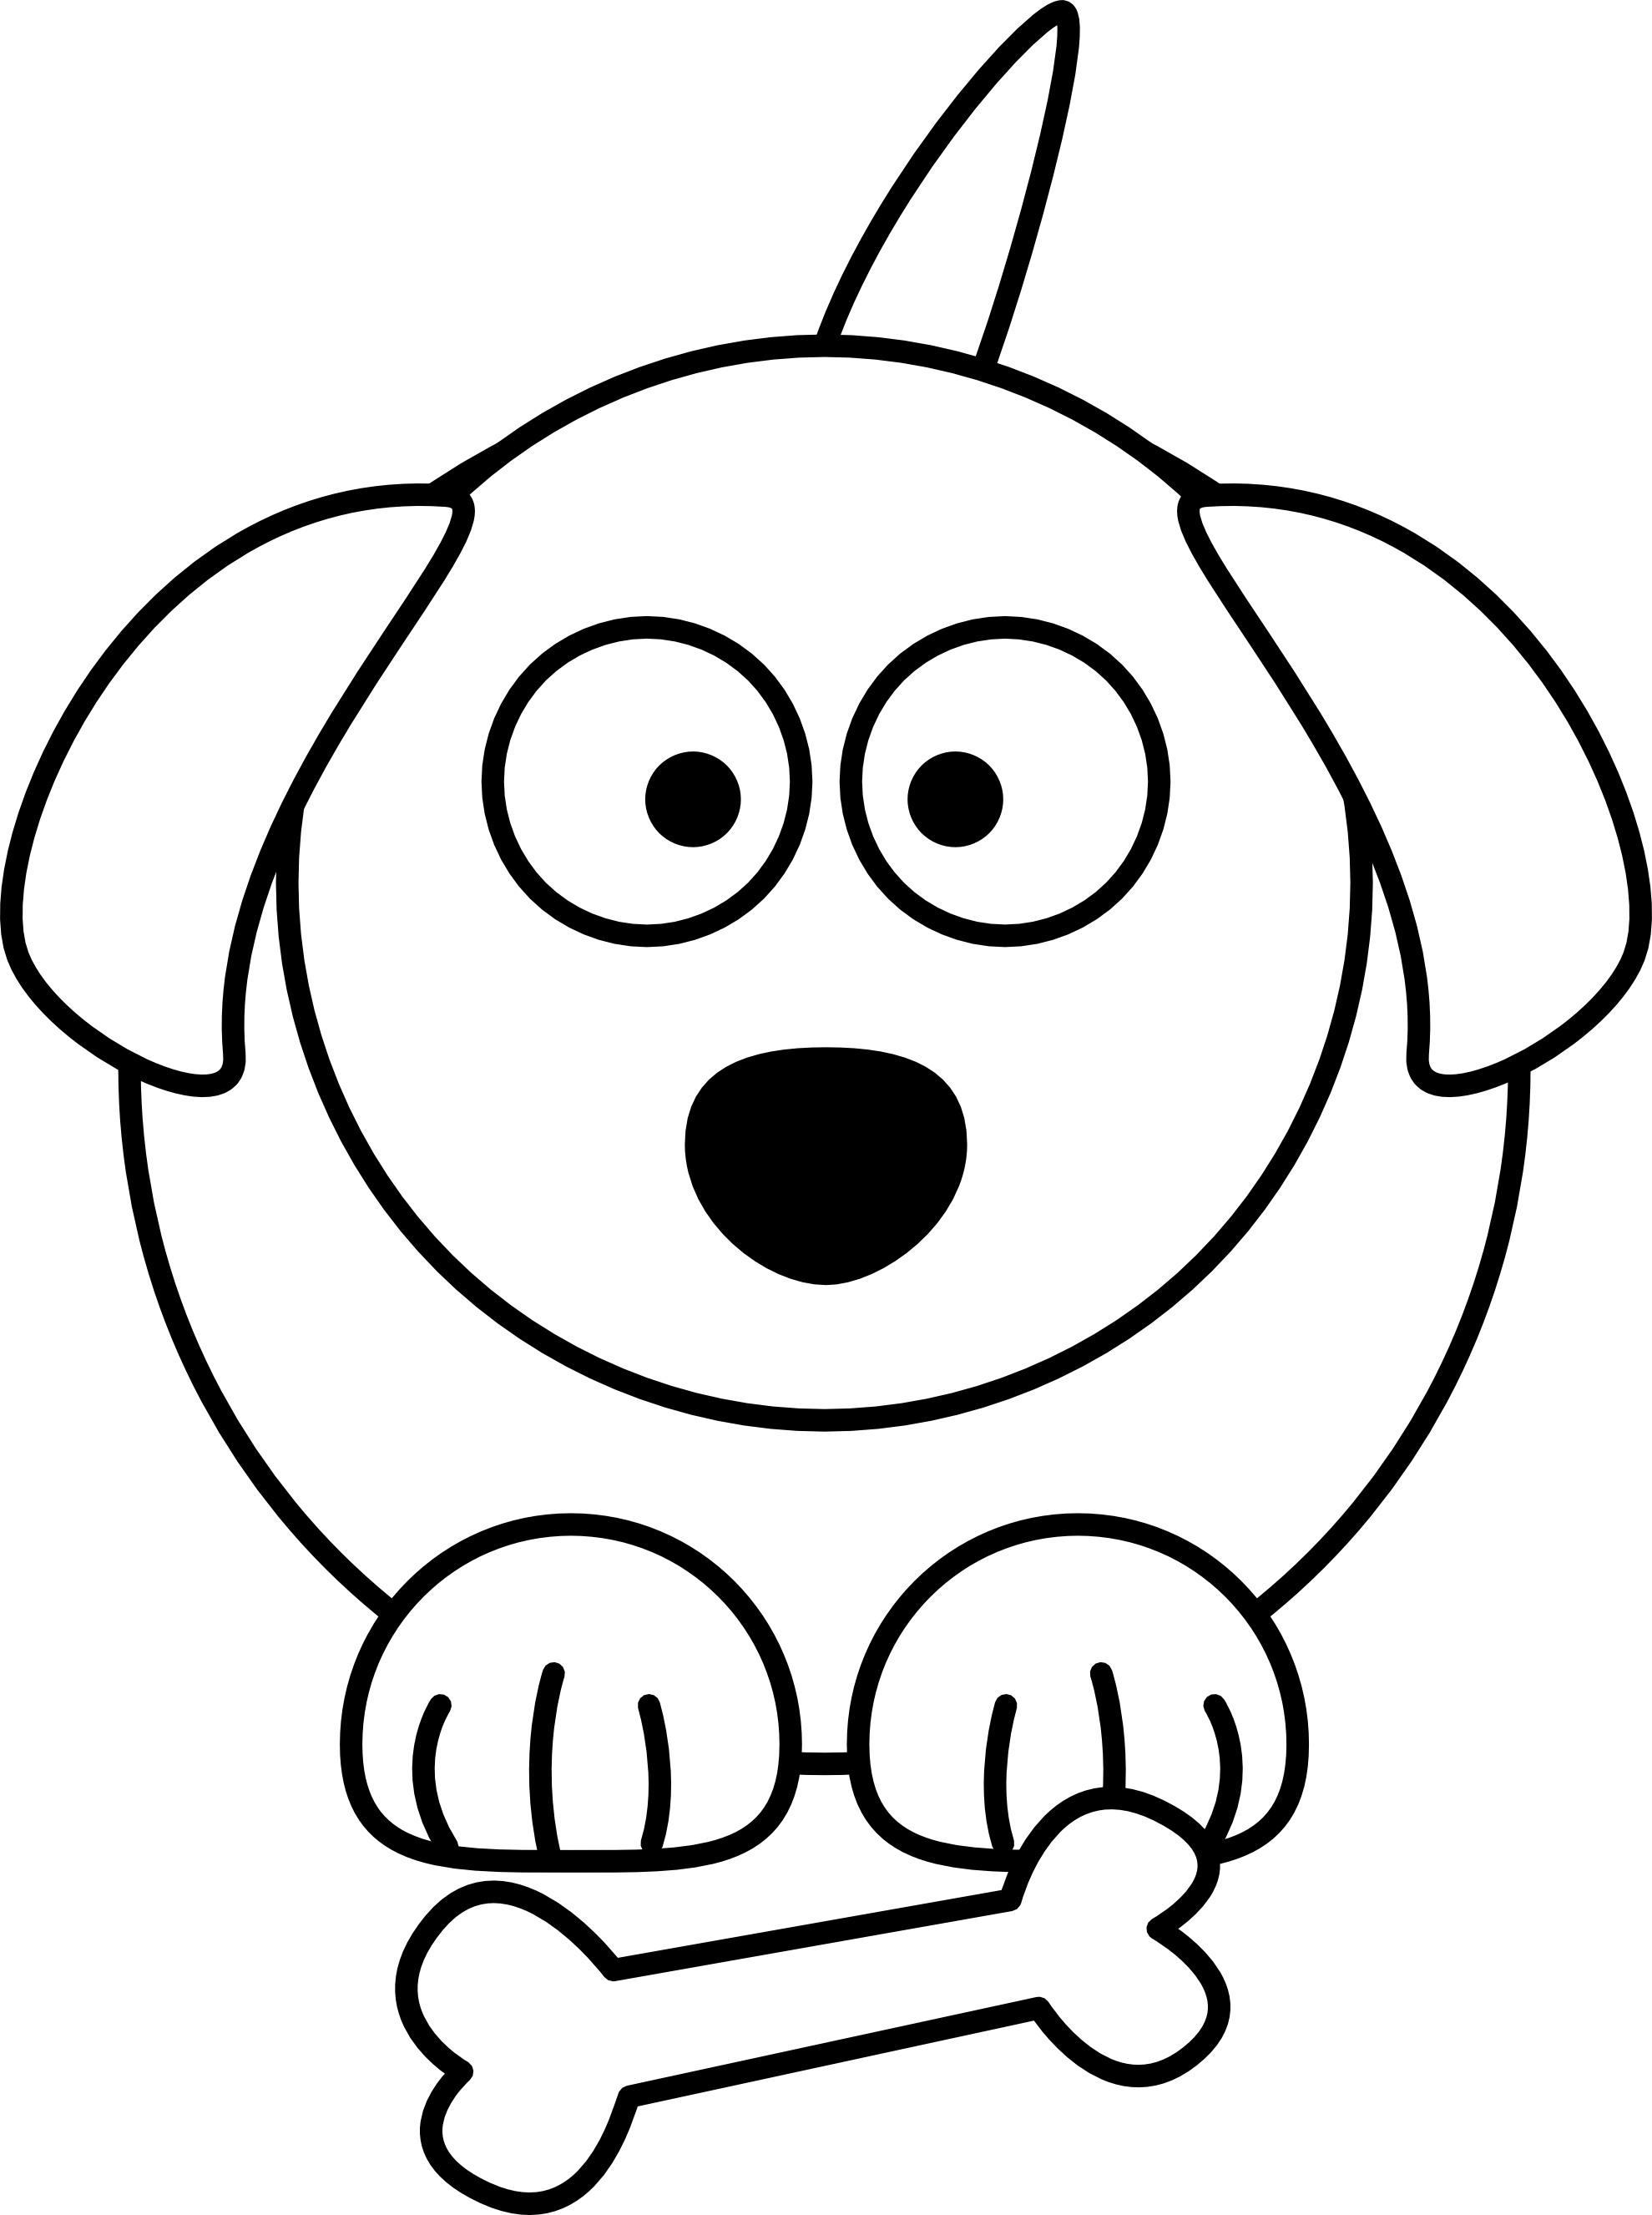 Draw clipart drawing. Cartoon drawings of animals